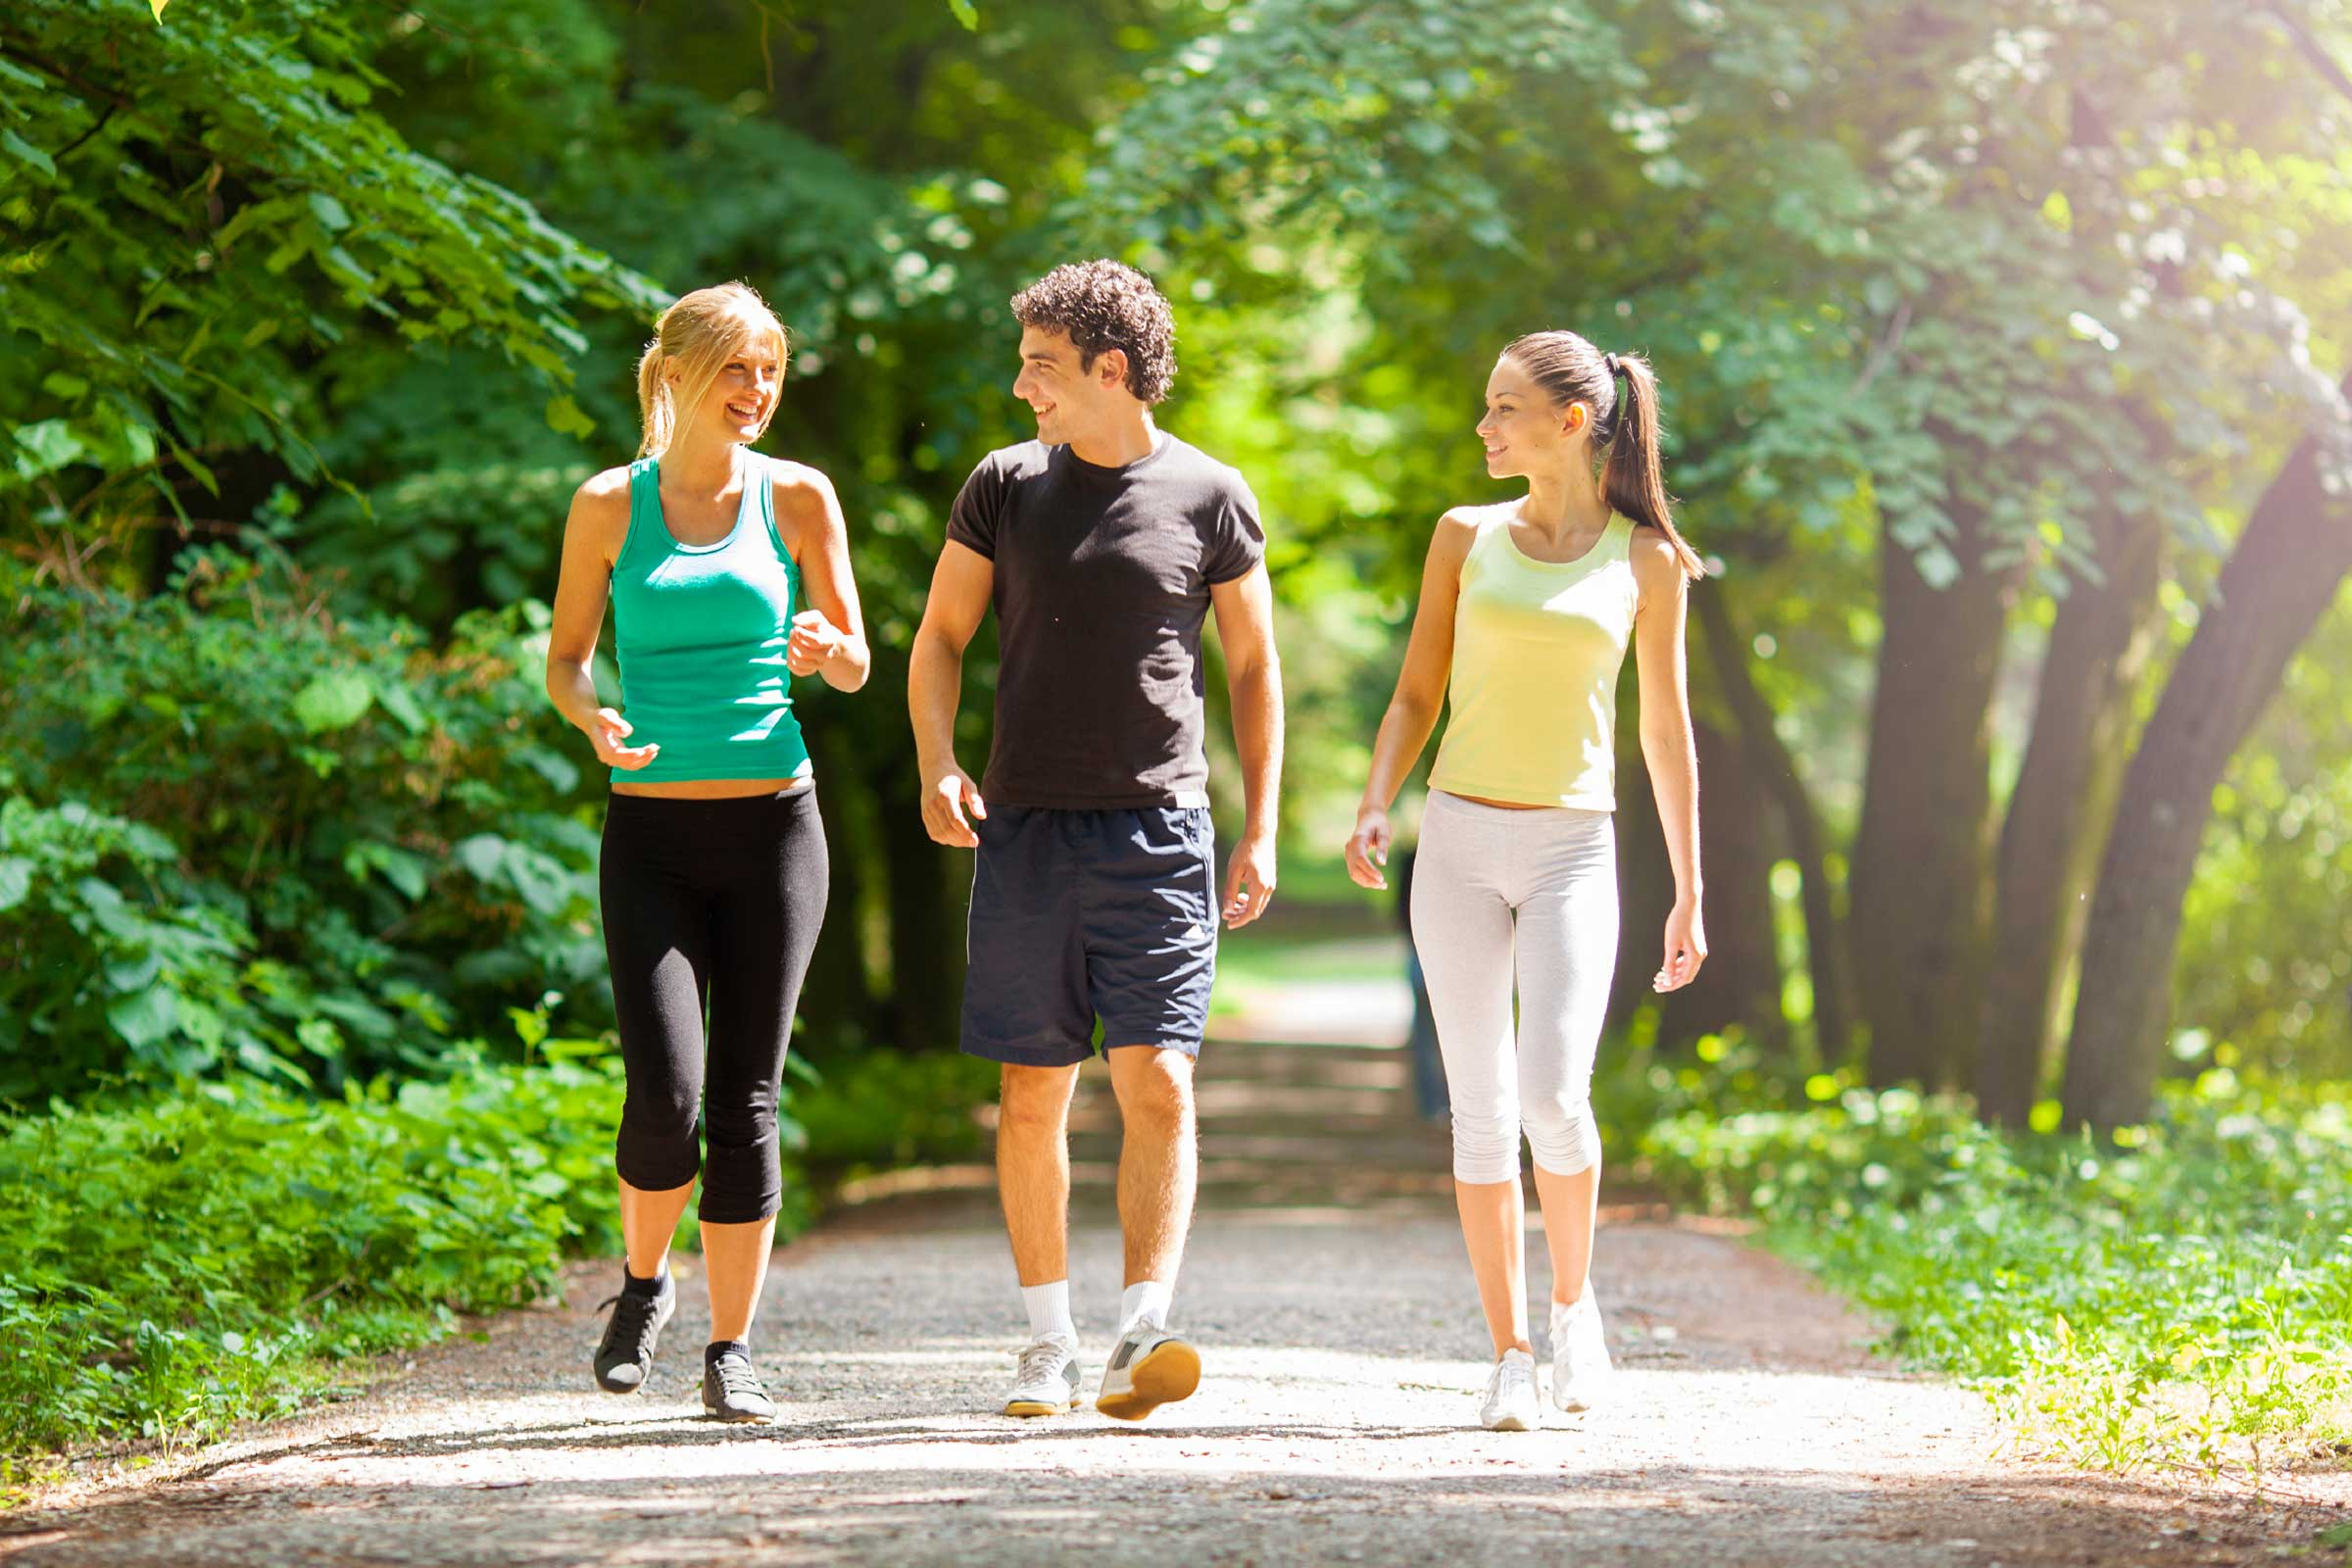 01-walking-for-exercise-stroll-with-friends